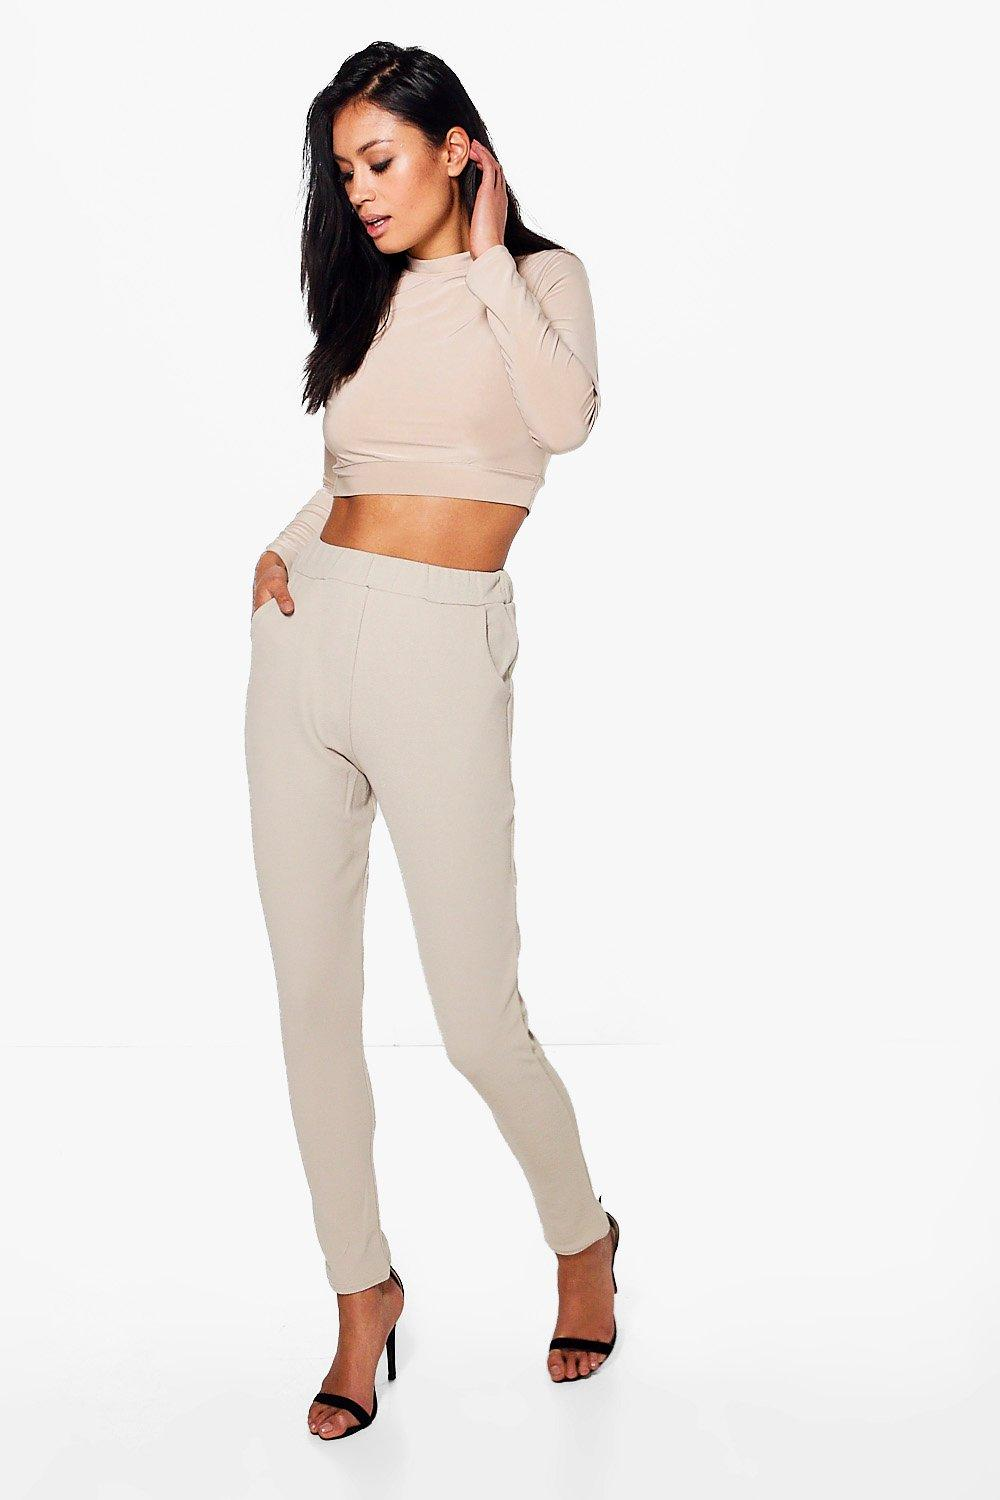 Becky Roll Neck Top And Skinny Trouser Co-ord